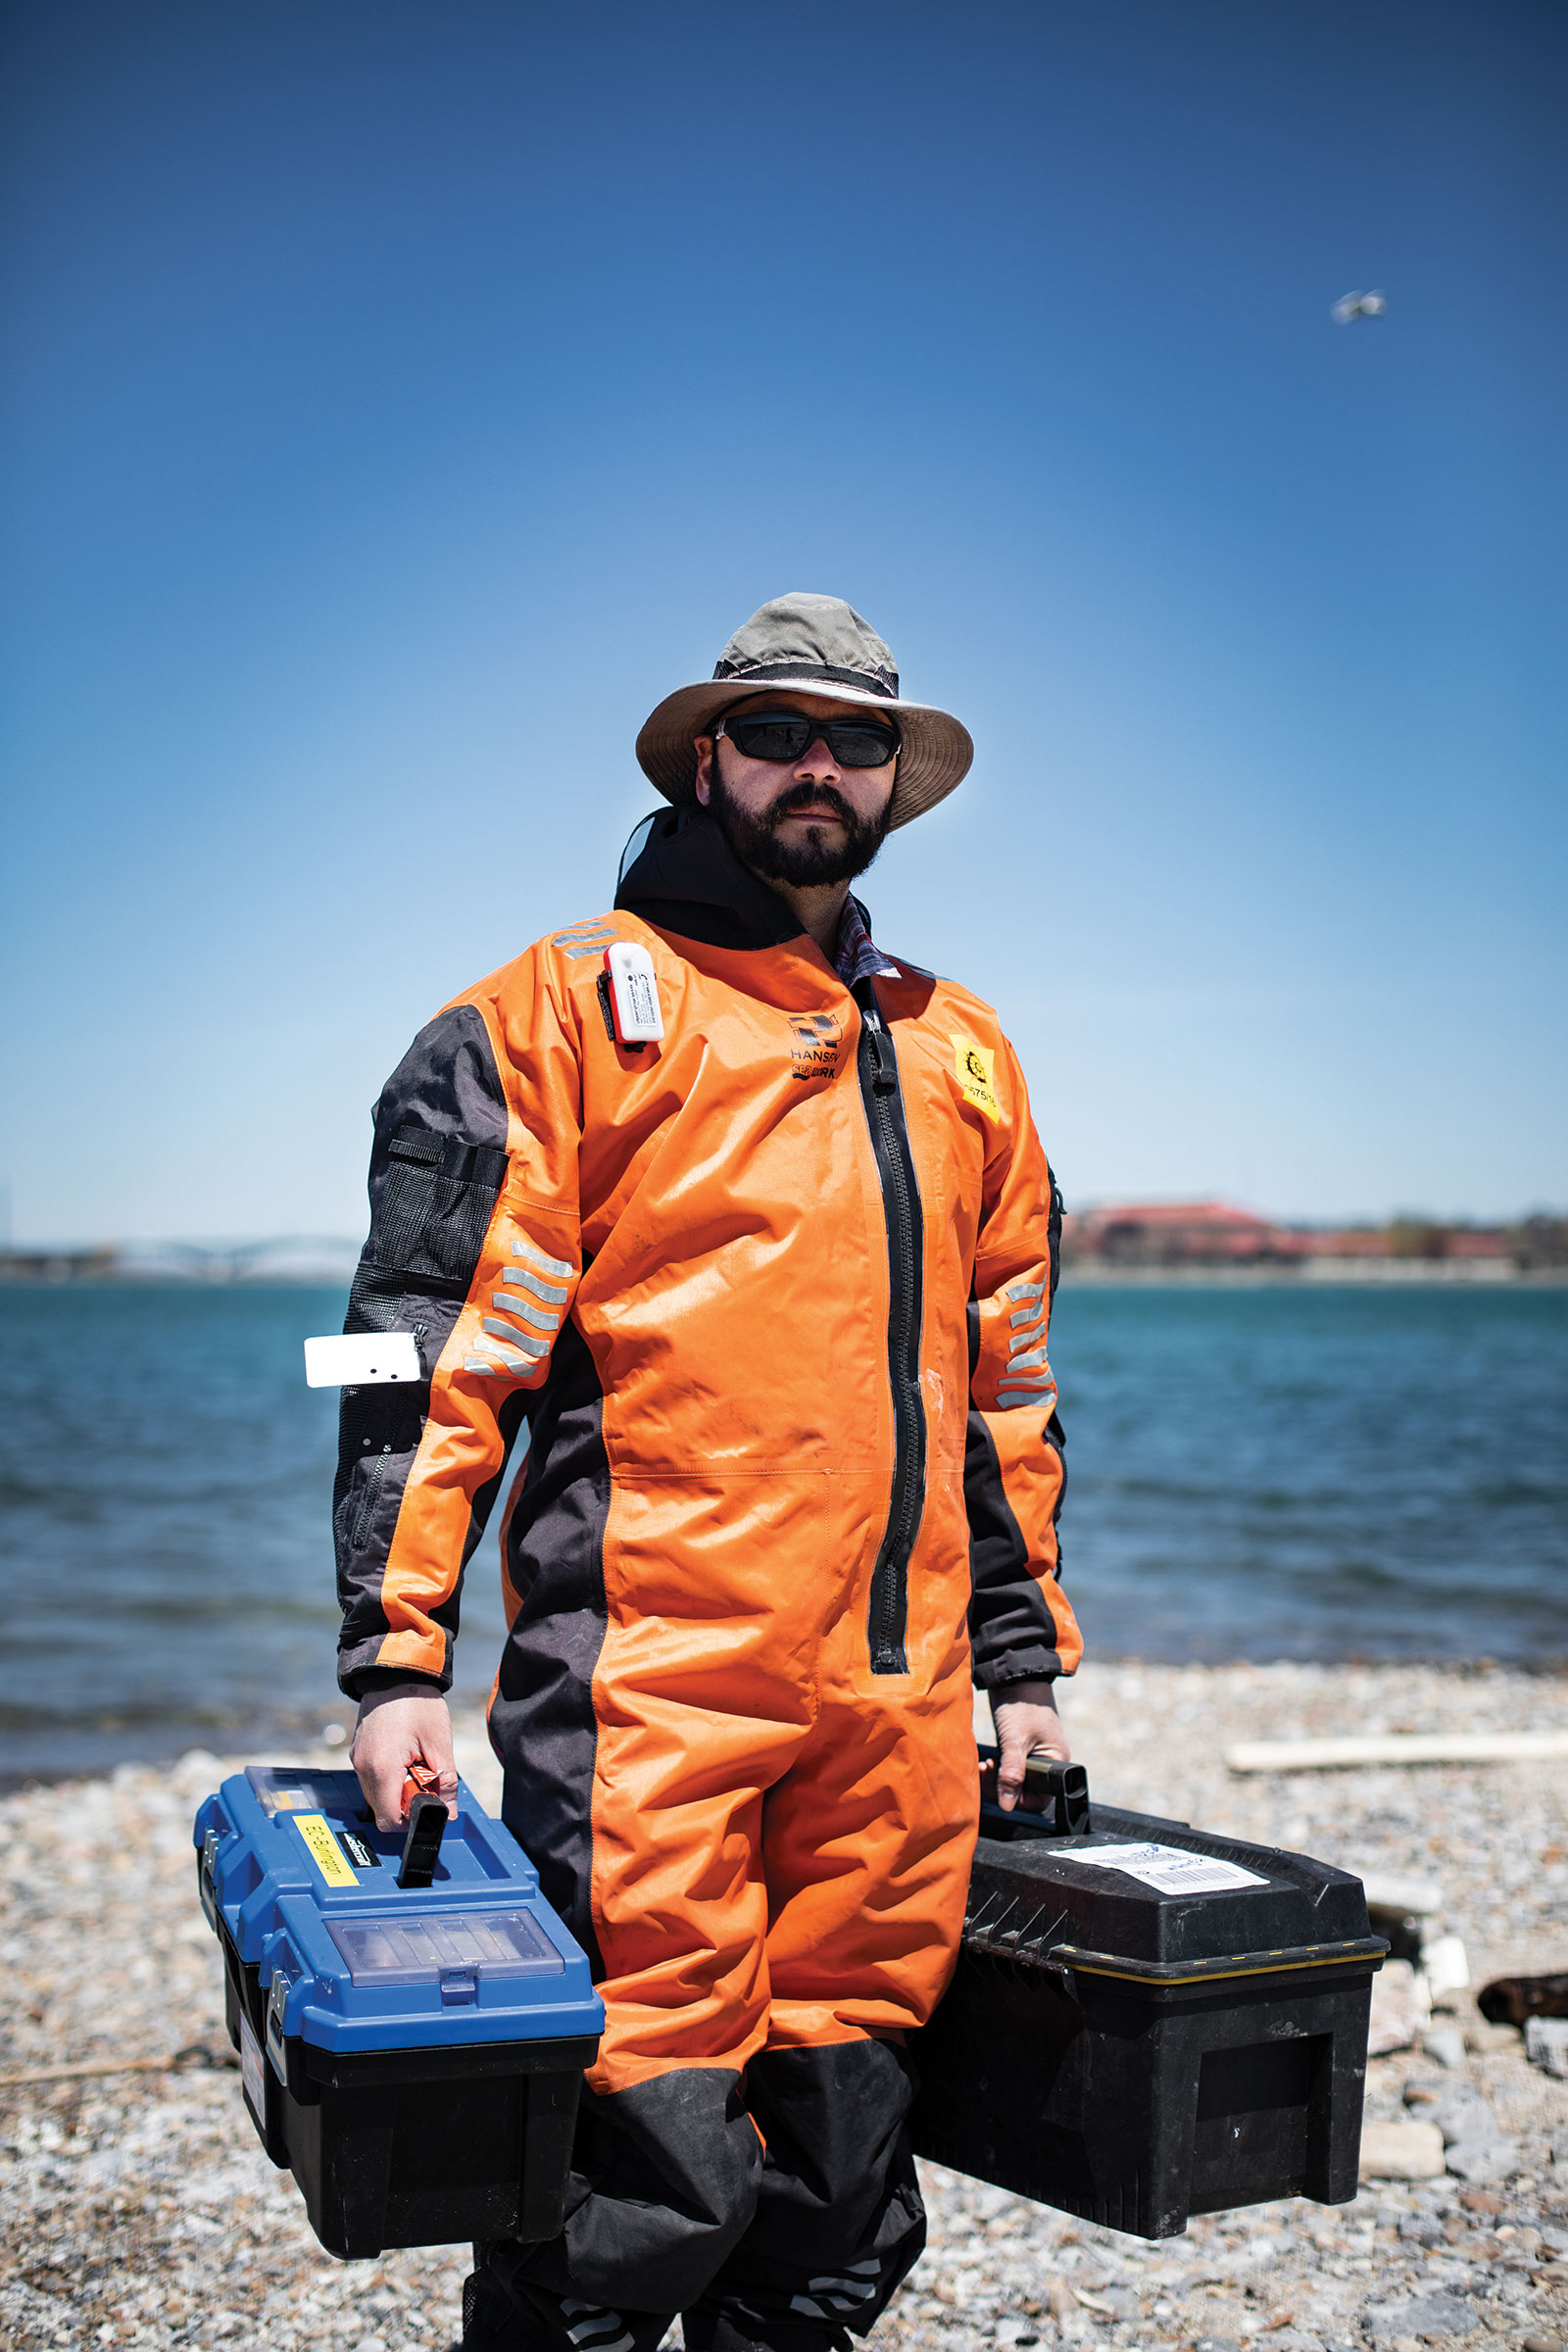 Shane de Solla, an ecotoxicologist and survey leader for the Herring Gull Monitoring Program, suits up to collect eggs for chemical testing. Scott Gable